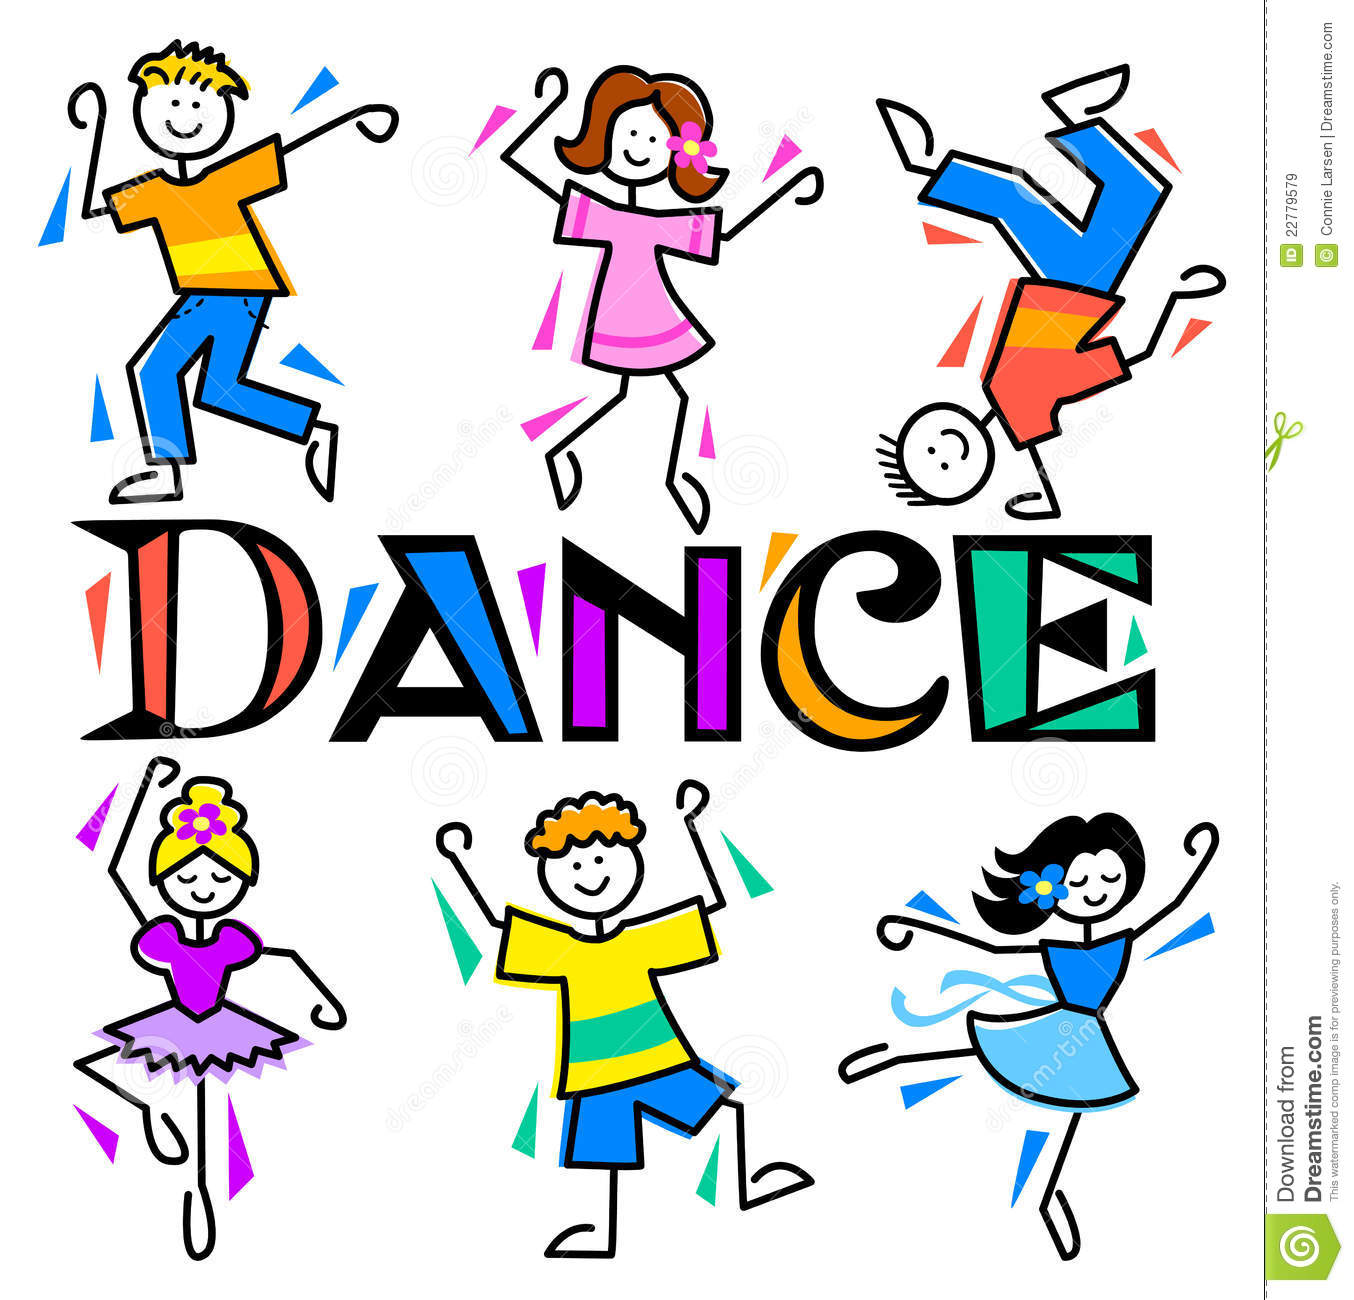 Cartoons Dancing Animated Clipart - Clipart Kid